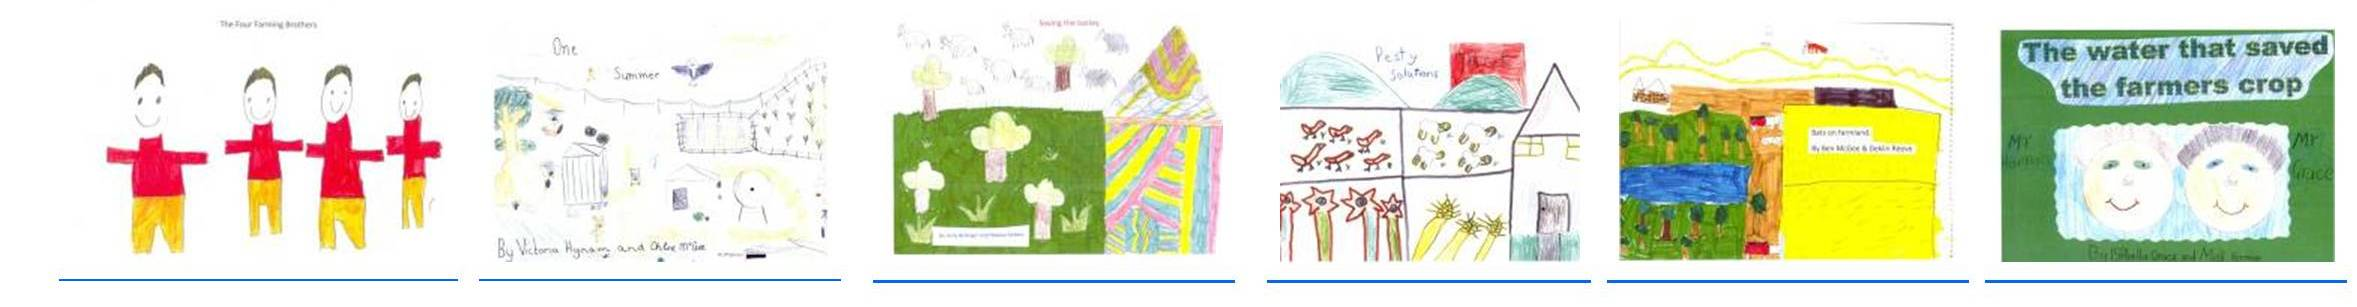 phto of covers of the 6 St Joseph's PS Hopetoun books on Sustainability issues in farming